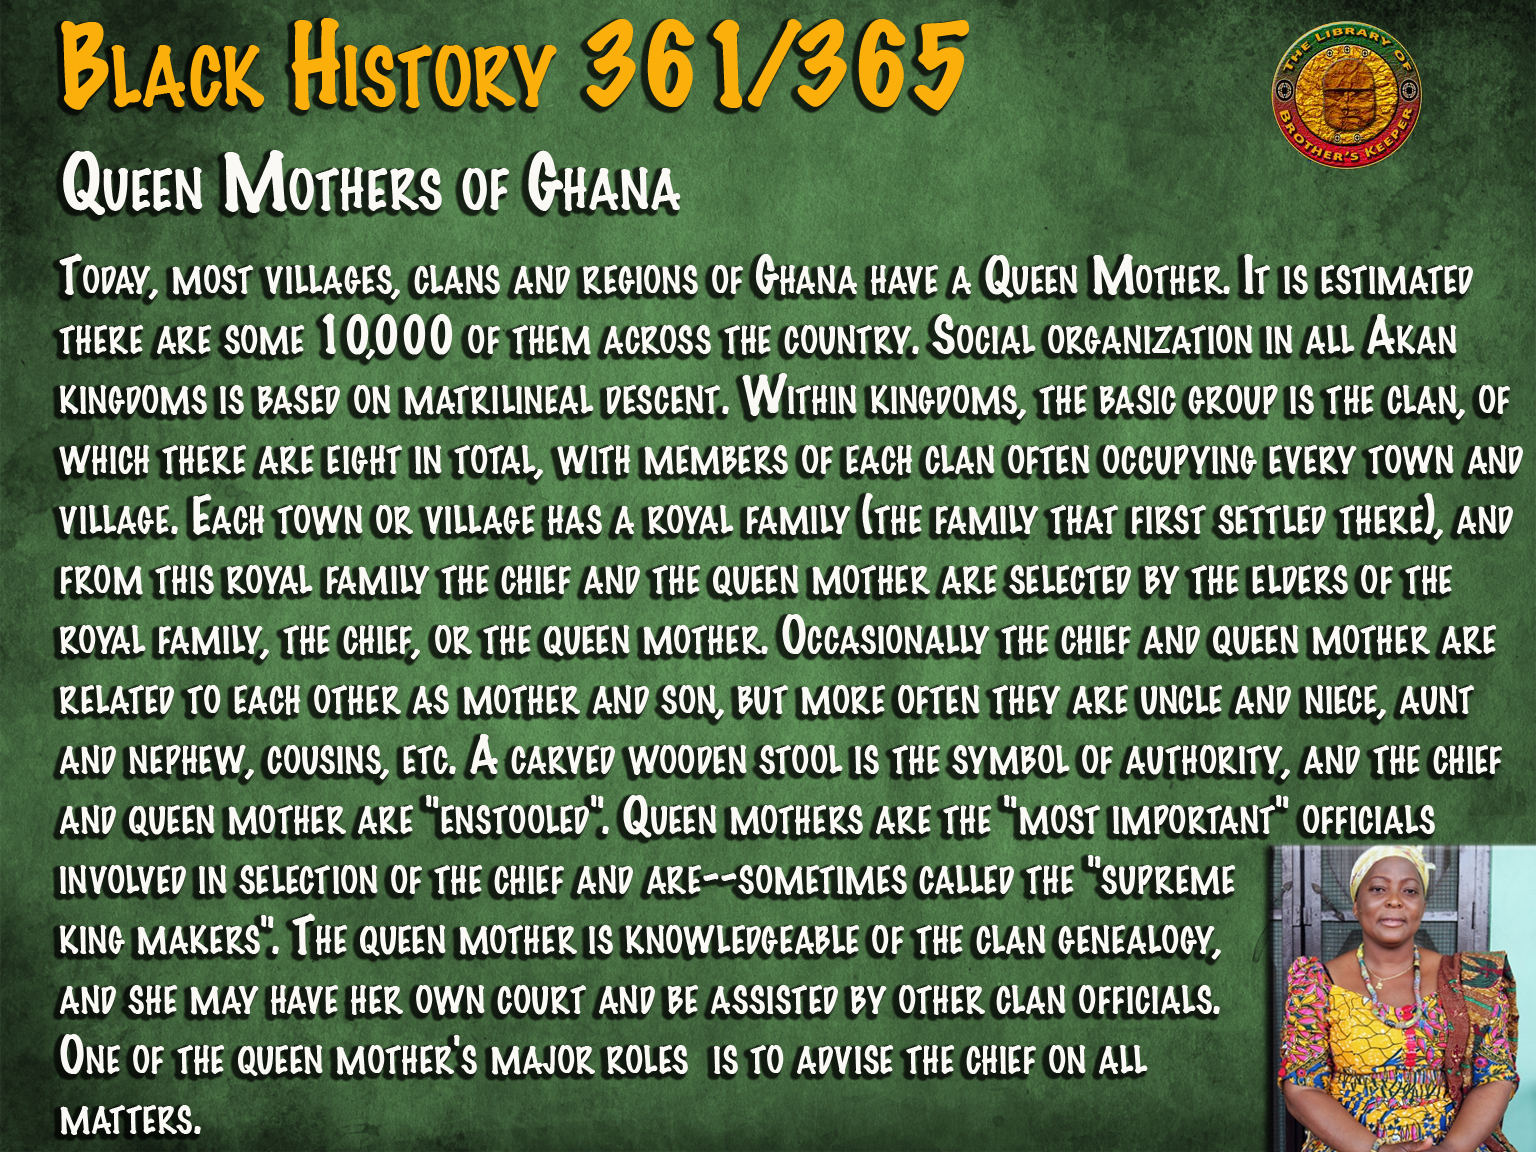 Queen Mothers of Ghana